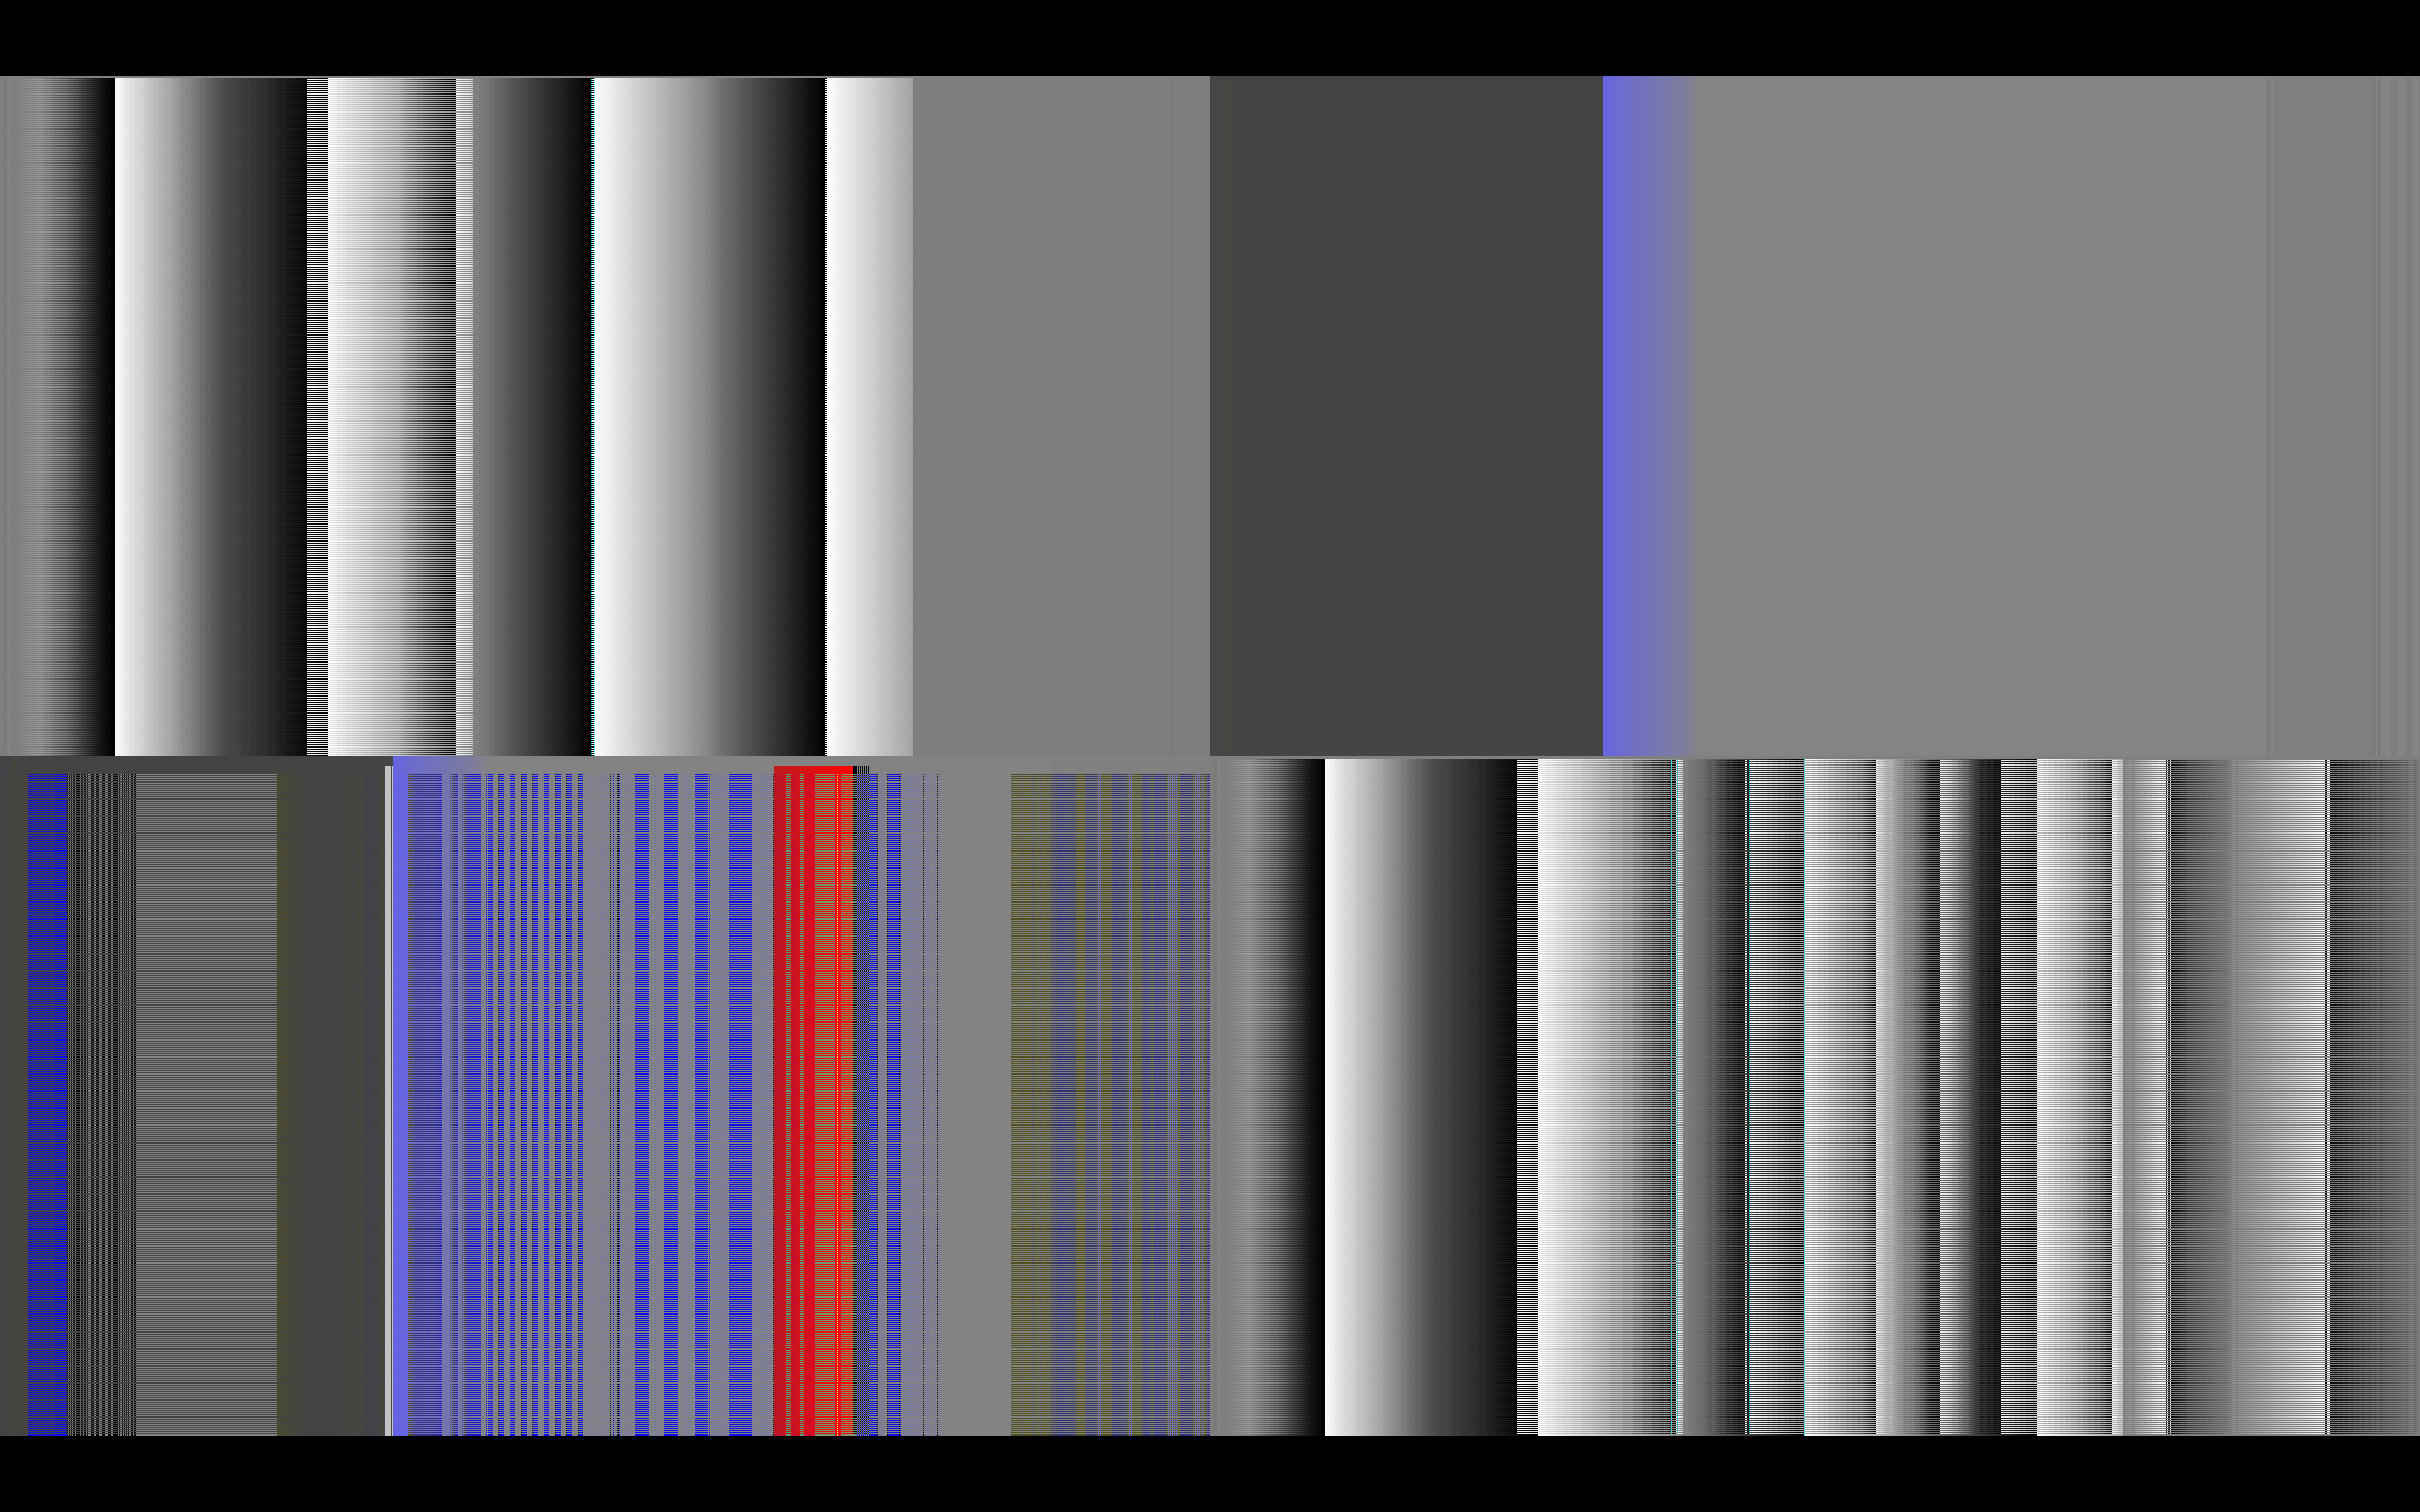 FFmpeg video codec 1 playback issues - The VideoLAN Forums